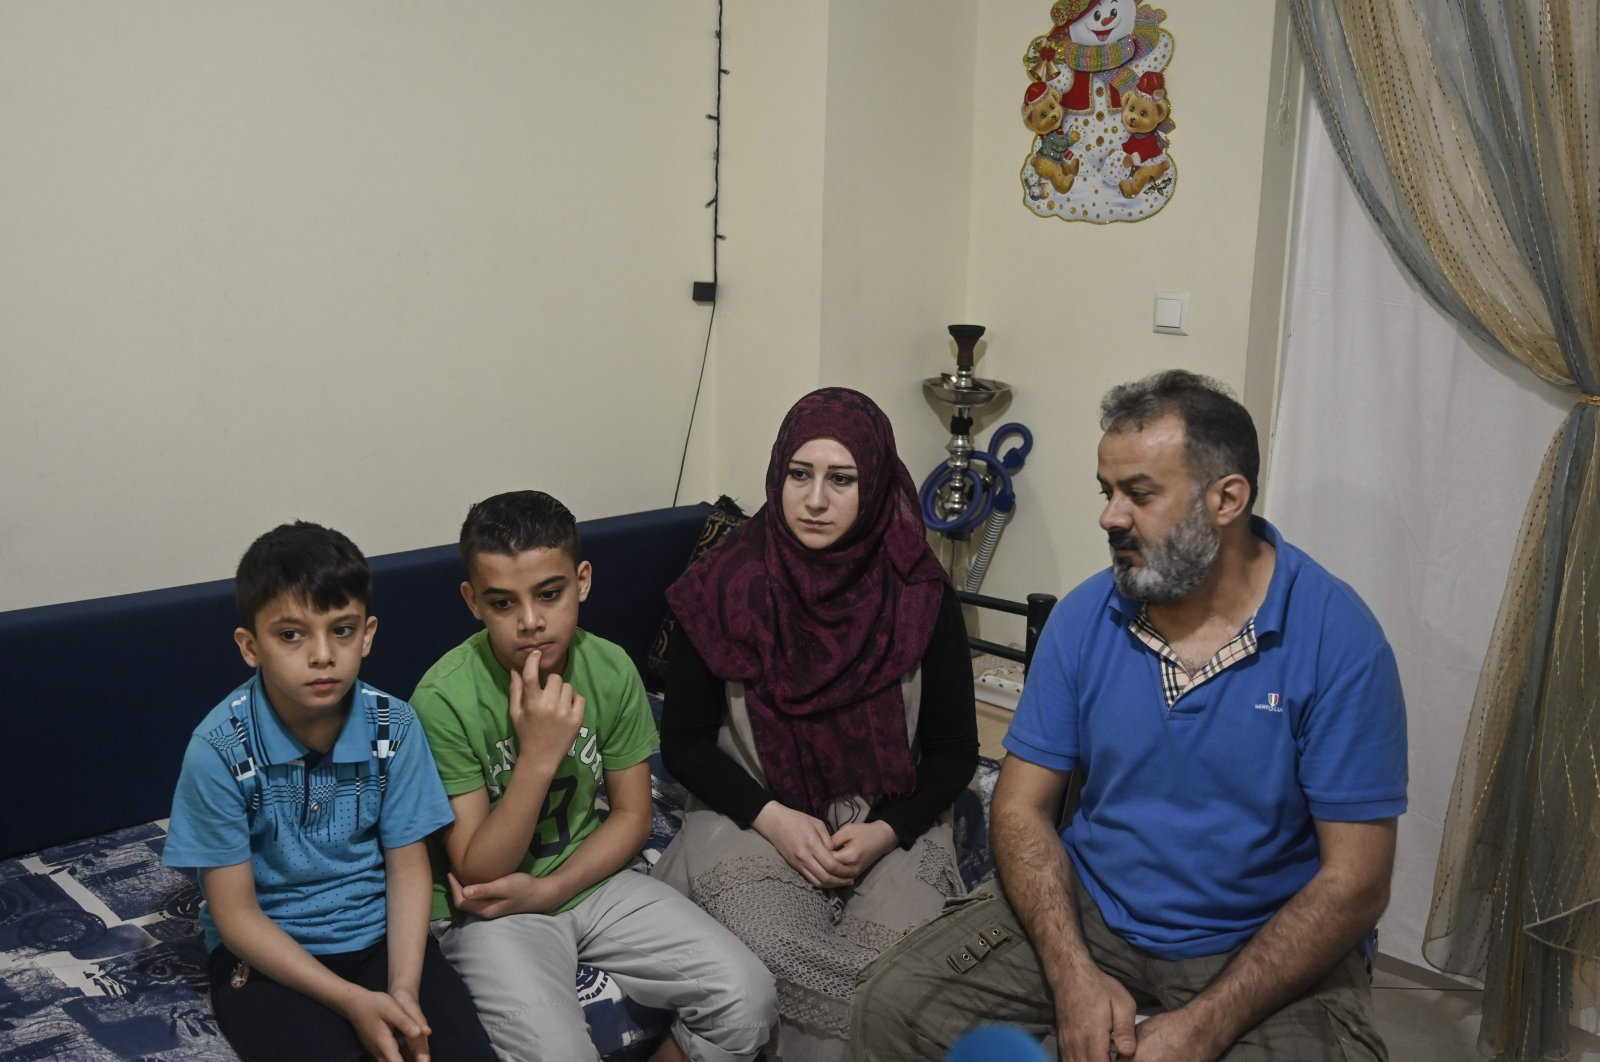 Abdelkader Rahmoun (R), a 44-year-old Syrian and his family sit in their apartment provided by NGO's through EU programs, at a working-class district in Piraeus near Athens on May 29, 2020. (AFP Photo)